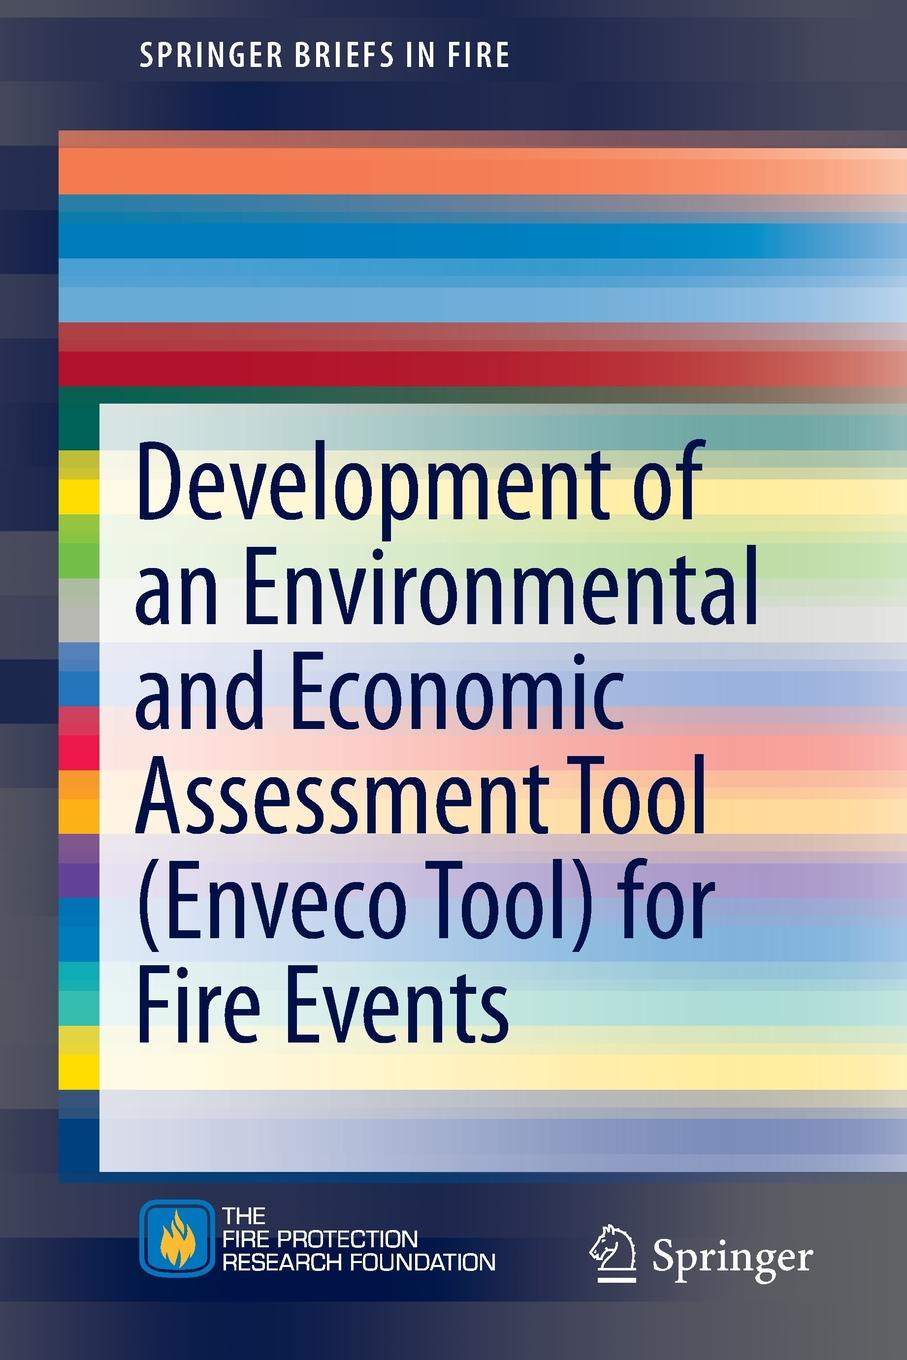 купить Francine Amon, Jonatan Gehandler, Selim Stahl Development of an Environmental and Economic Assessment Tool (Enveco Tool) for Fire Events по цене 9452 рублей